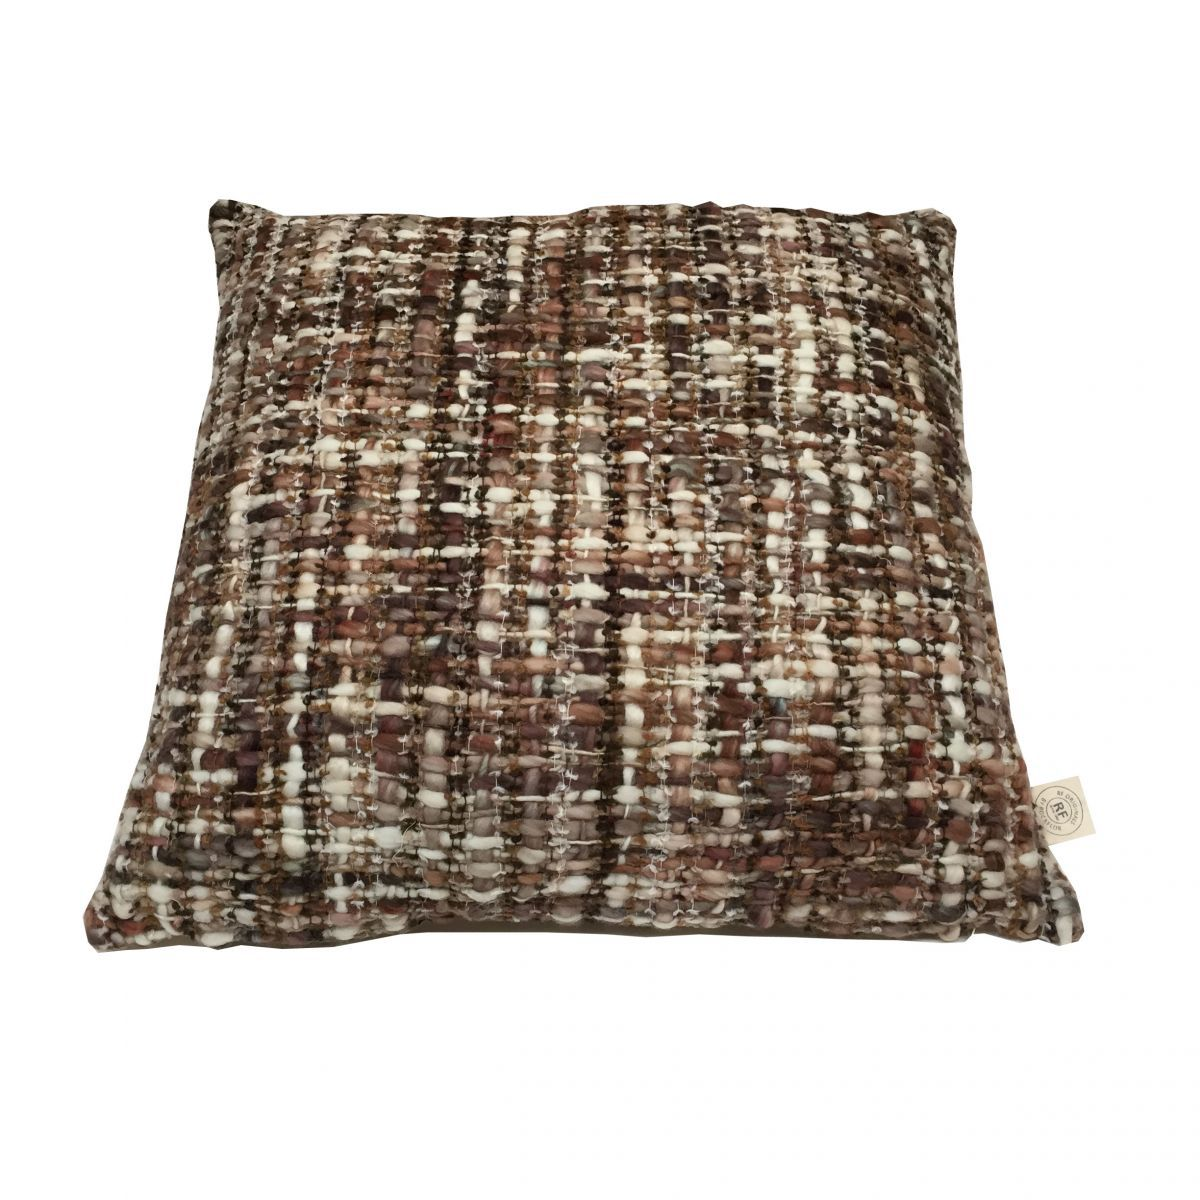 cushion acrylic brown 50x50cm incl of filler